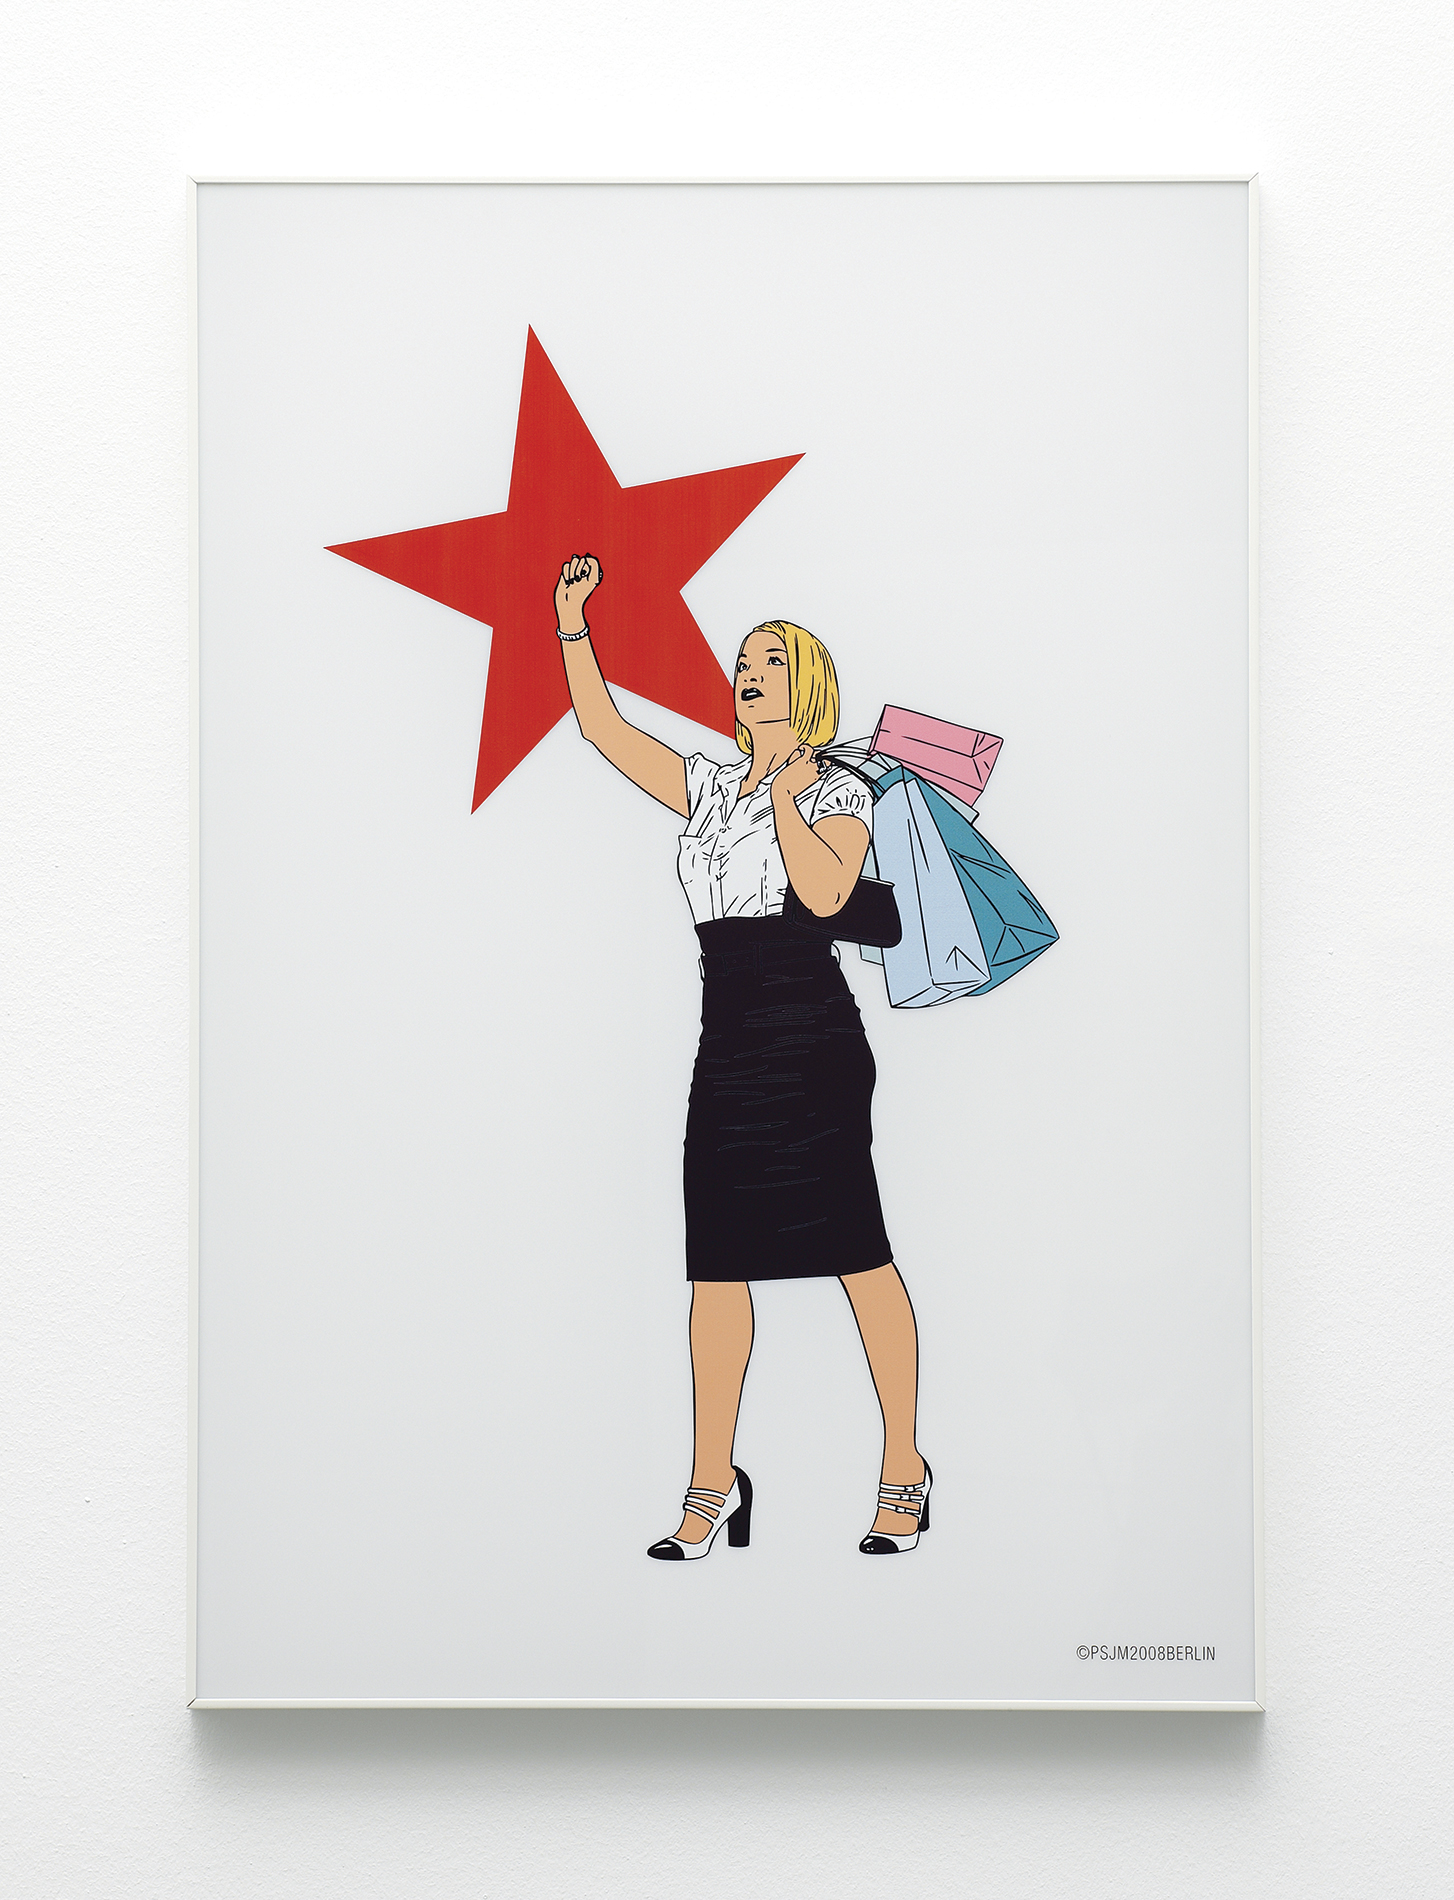 New Consumer, 2008, Cut vinyl on methacrylate, 100 x 70 cm, Ed. 15